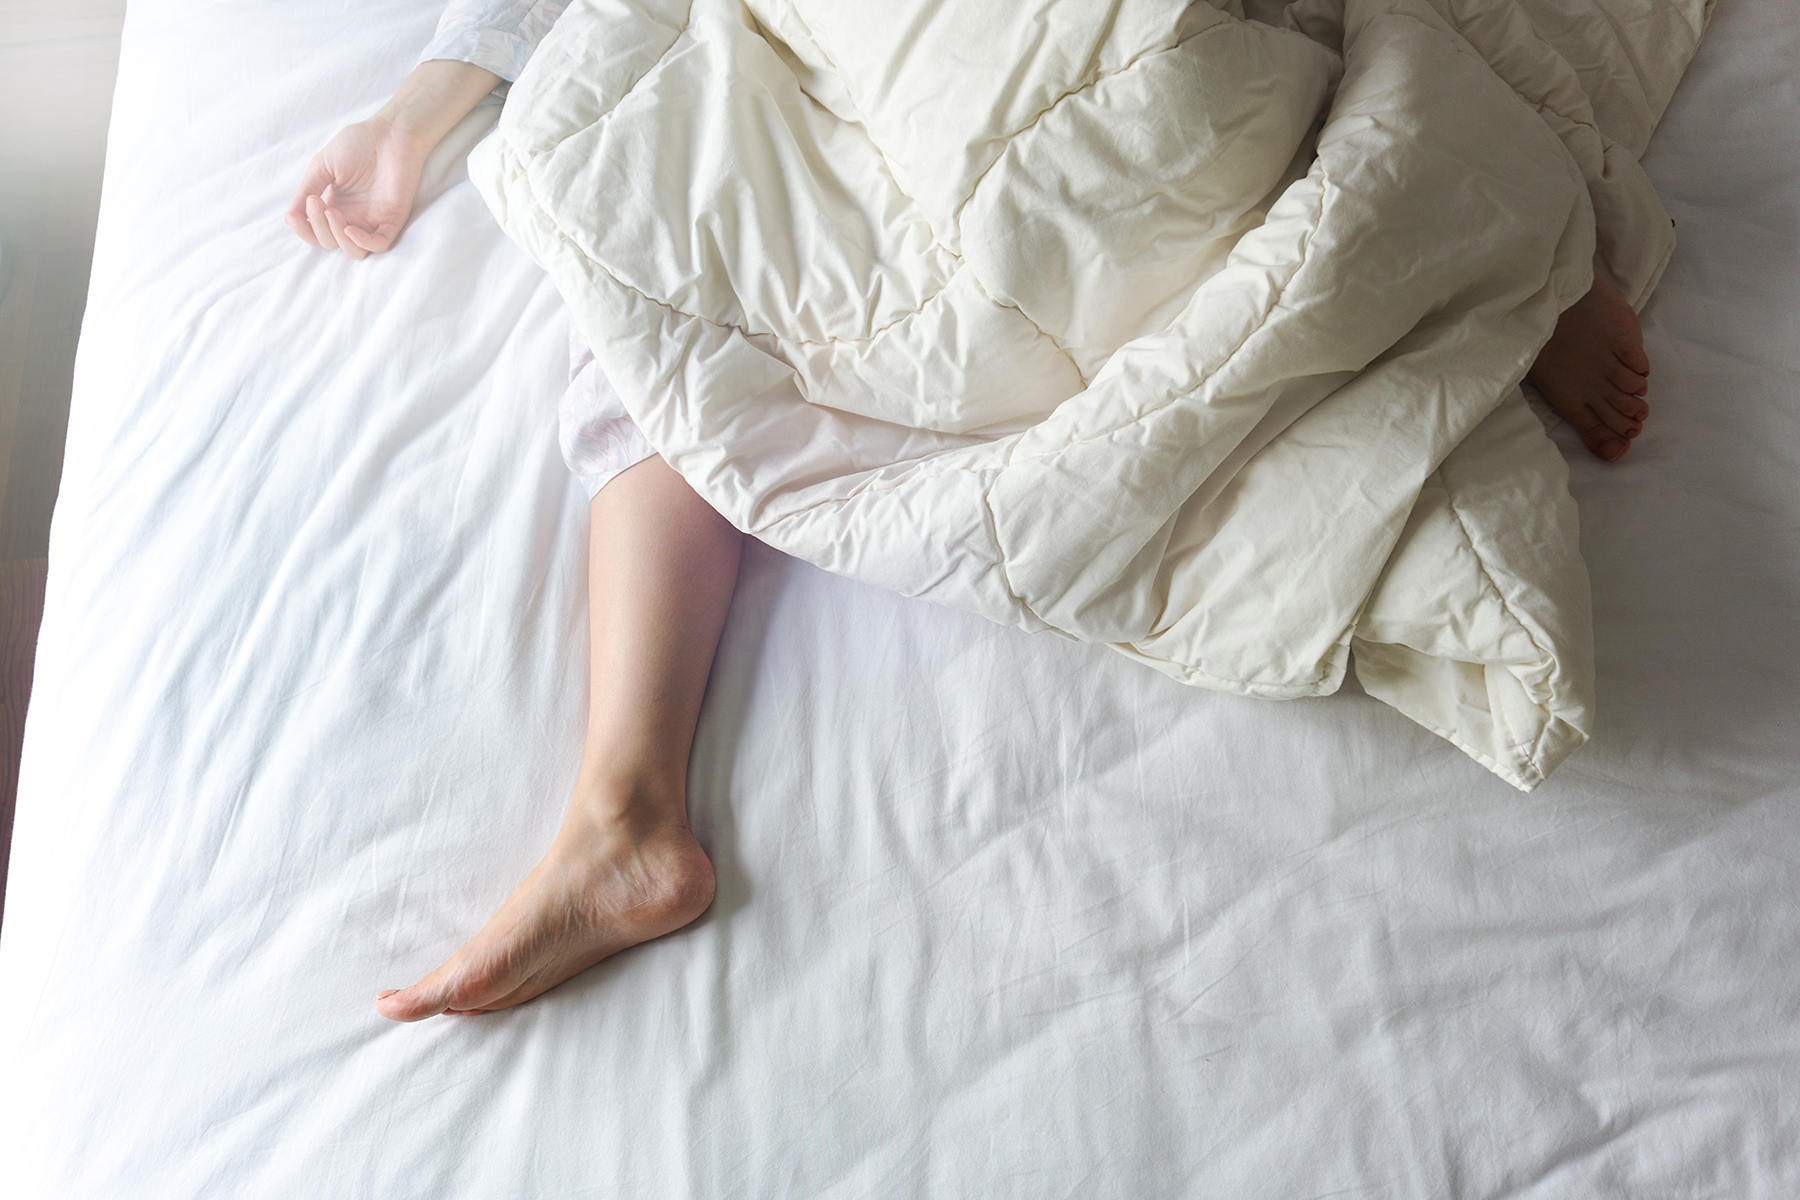 Woman under comforter on mattress